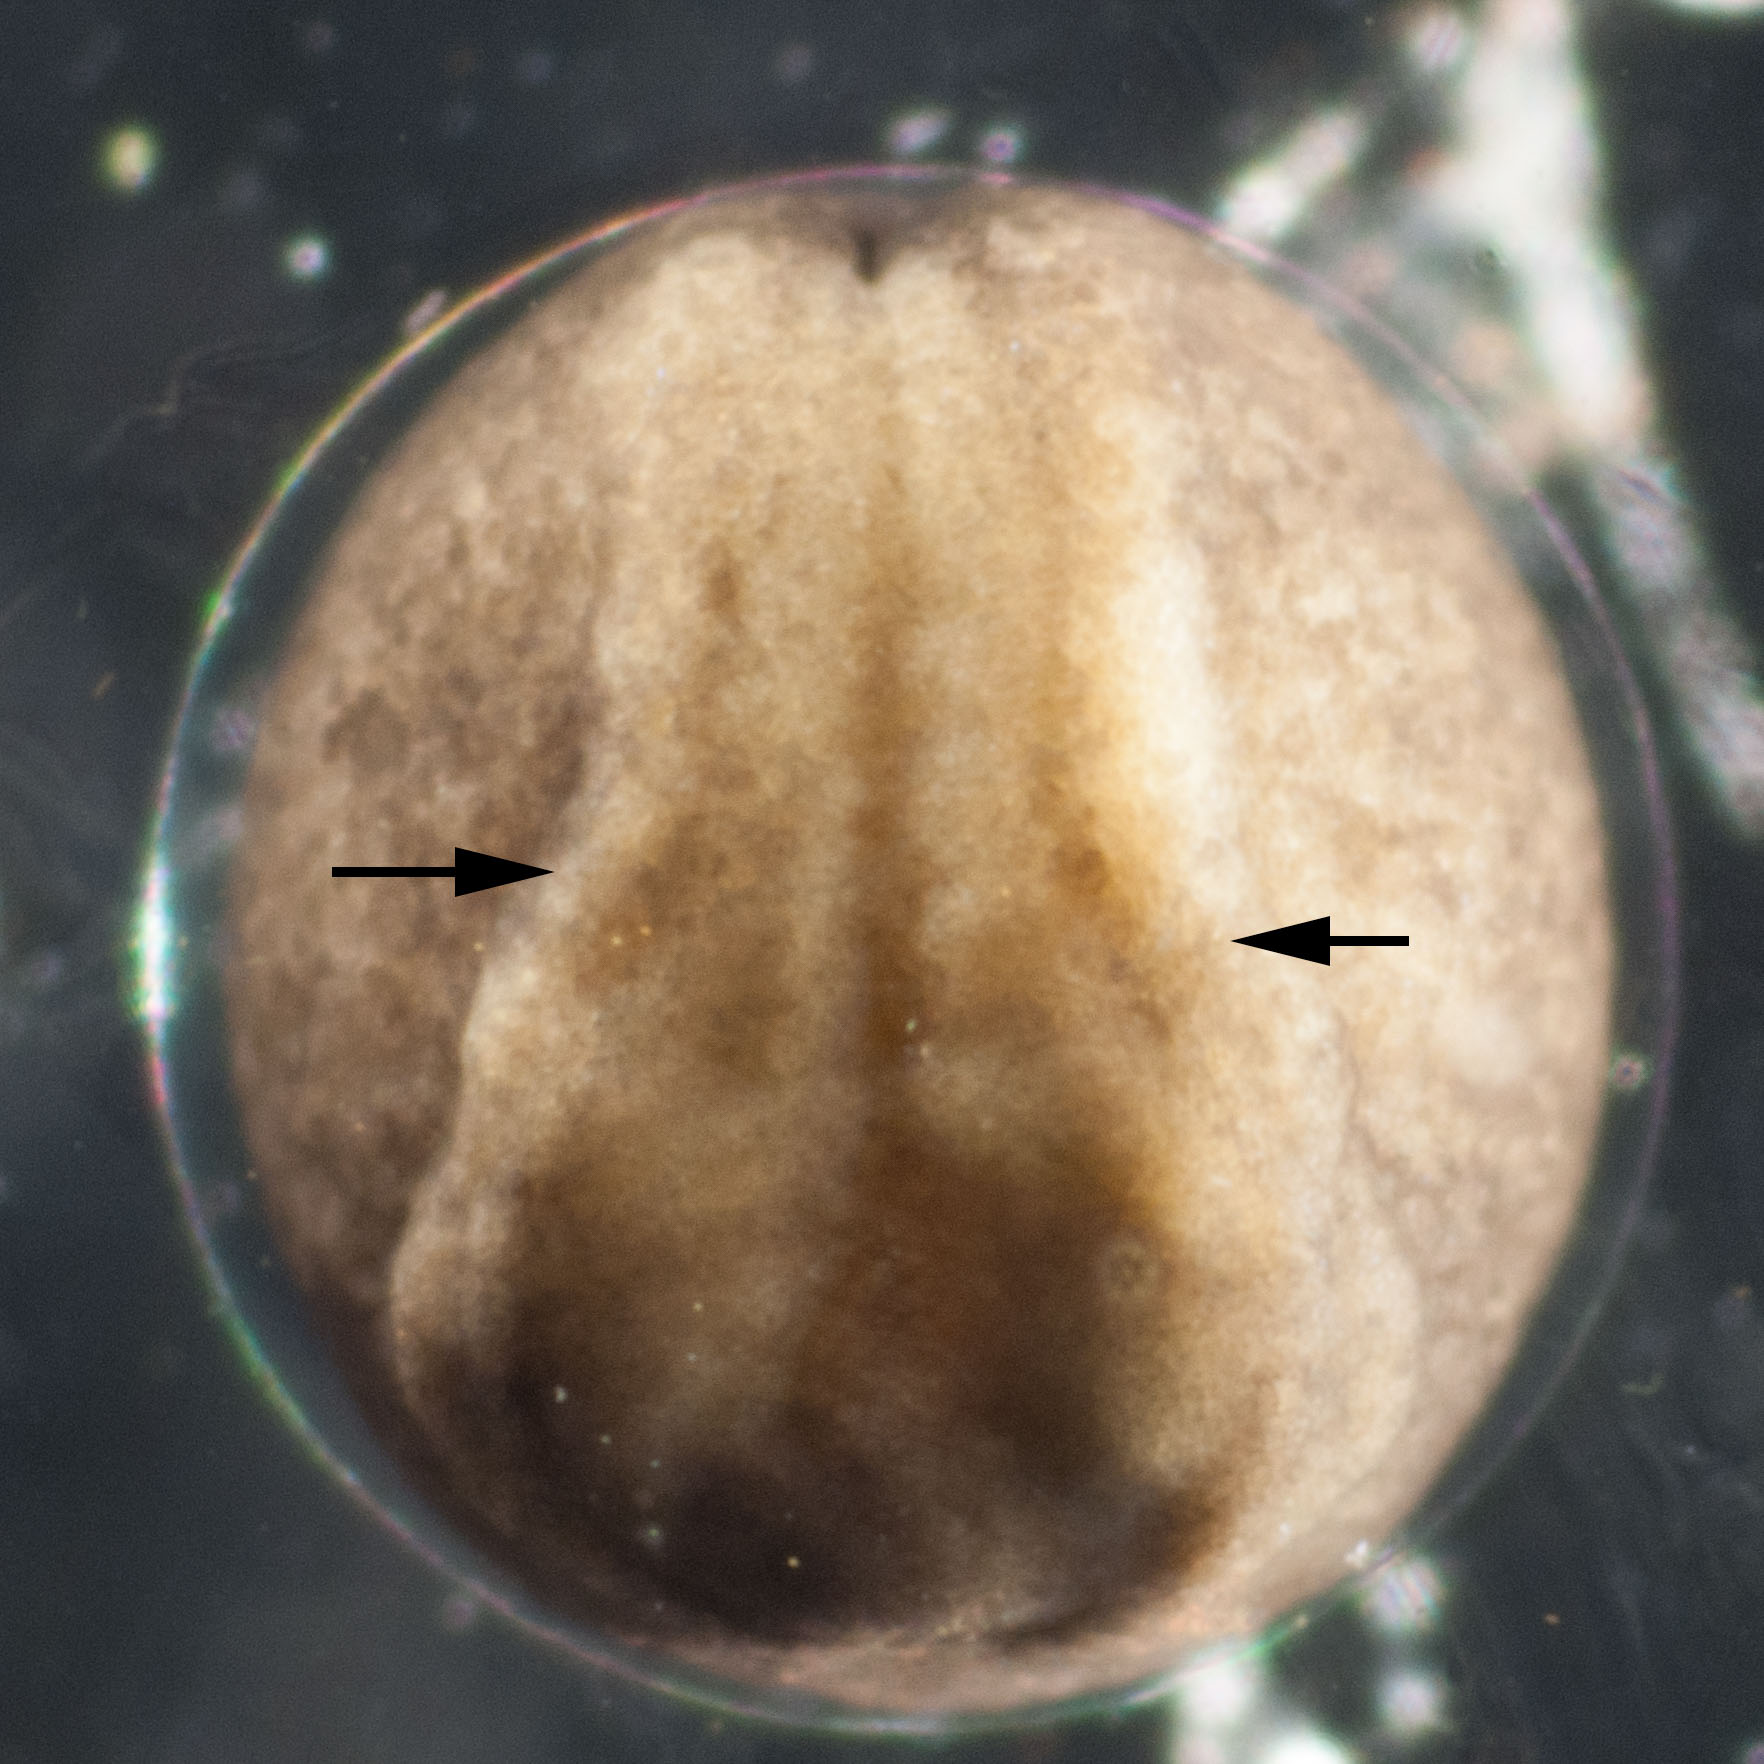 Image 3.  A pair of folds (arrowed) rises up from the surface along the length of the embryo, on either side of the midline.